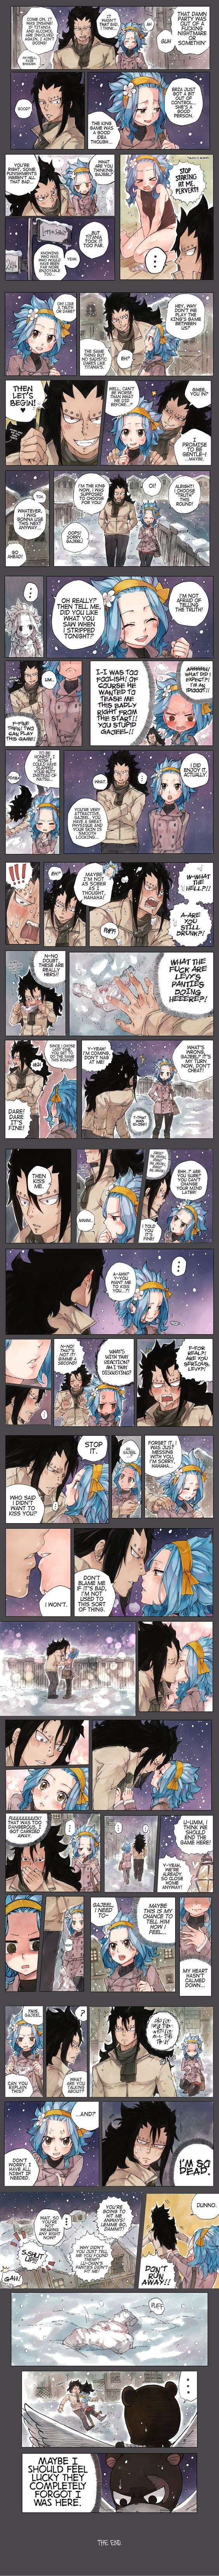 The Panty Incident - A continuation of the Christmas Special where Gajeel and Levy walk home and attempt to flirt with each other. Too caught into their world, they forgot they had company. made by Rboz | sketchy ✖ flavor